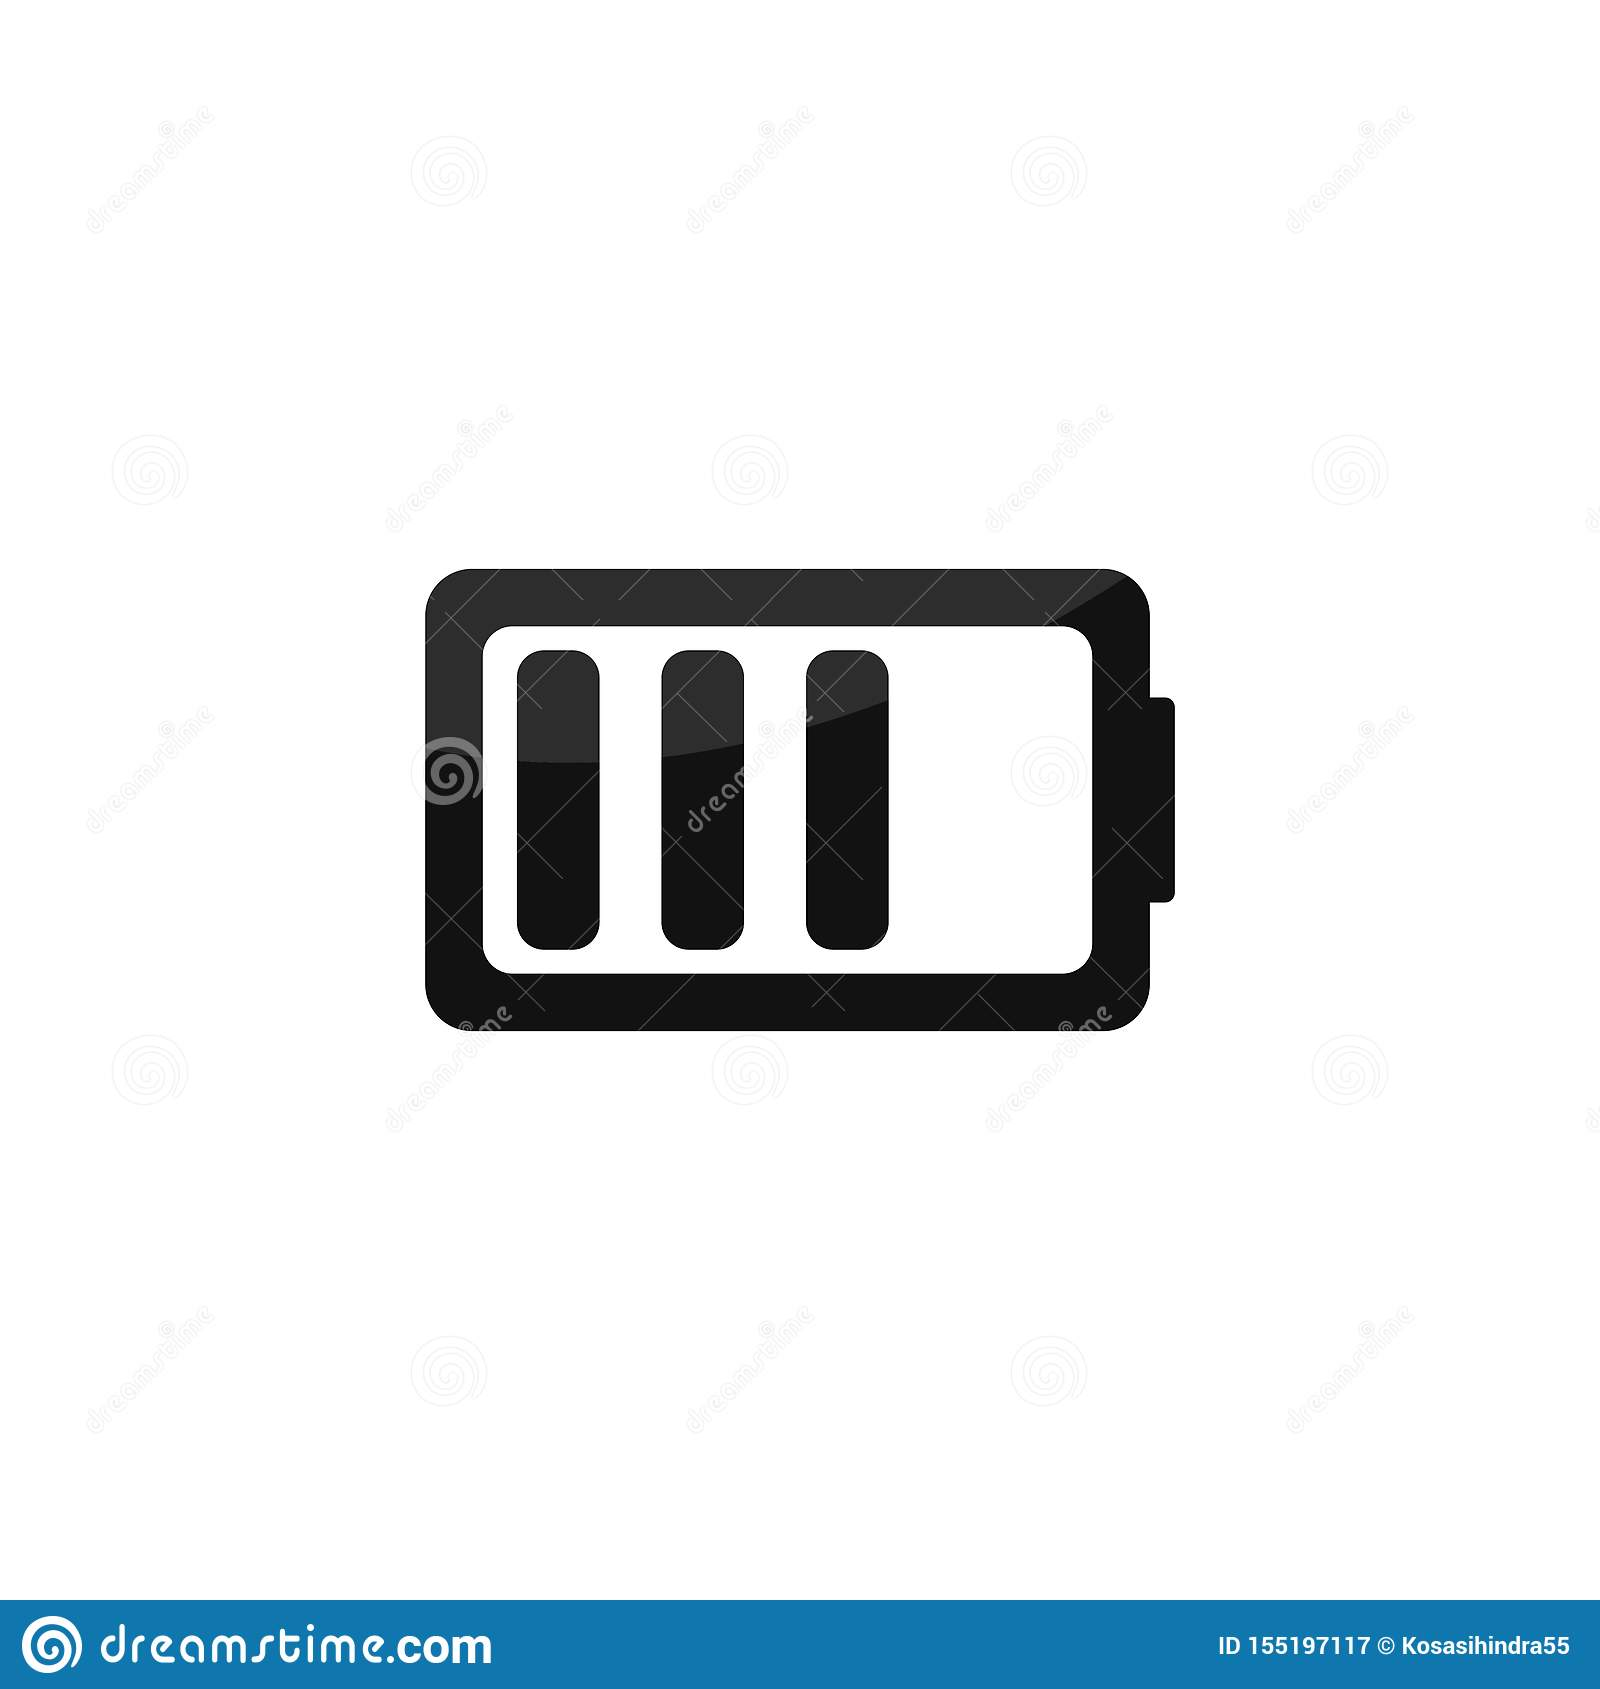 battery logo vector icon illustration stock vector illustration of charger idea 155197117 https www dreamstime com battery logo vector icon illustration flat design image155197117